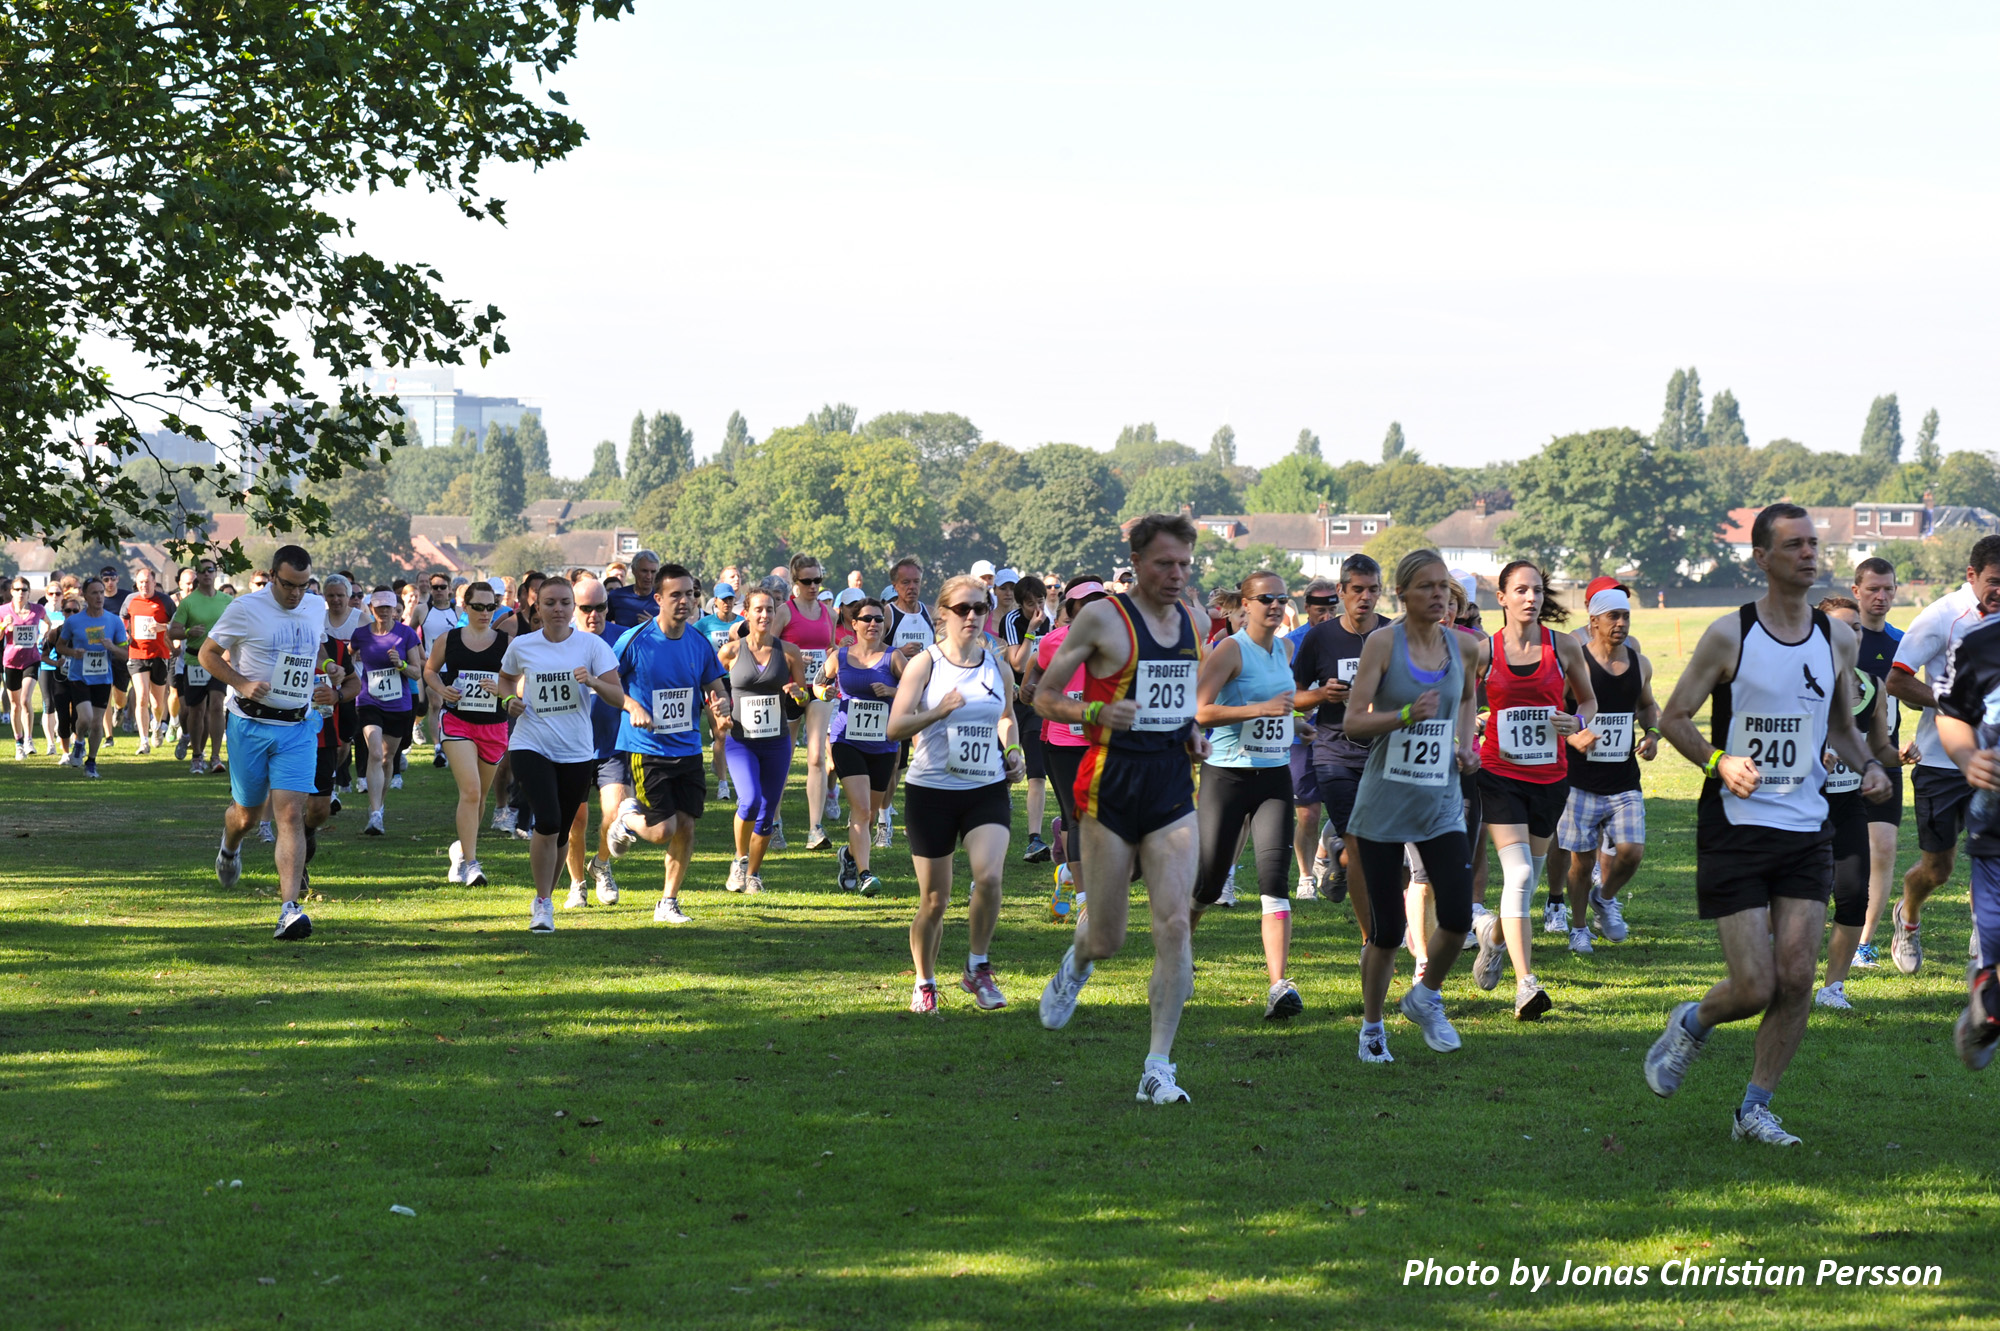 A large group of running Ealing Eagles